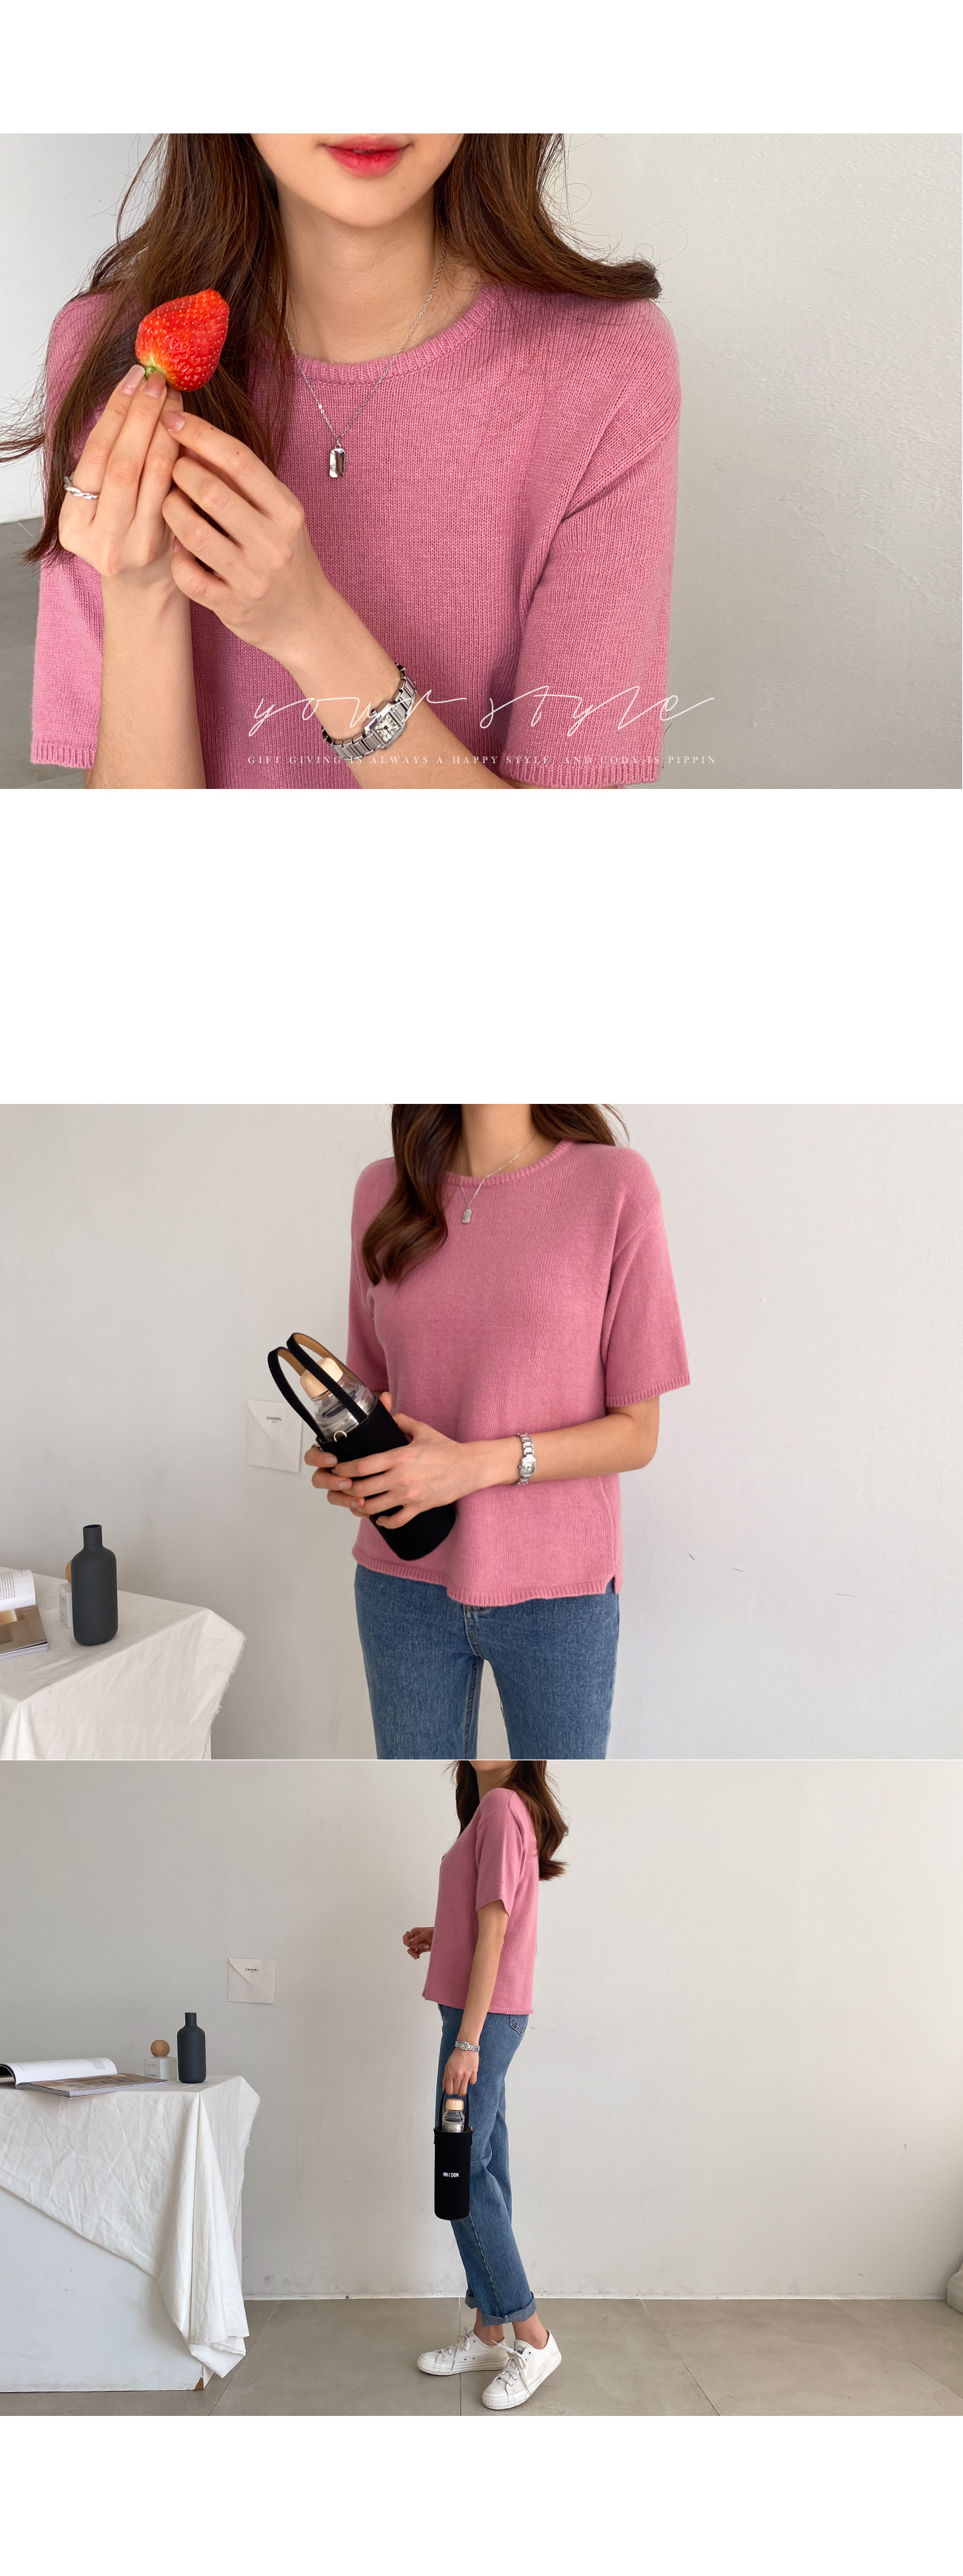 Perry Round Wool Short Sleeve Knitwear #108871